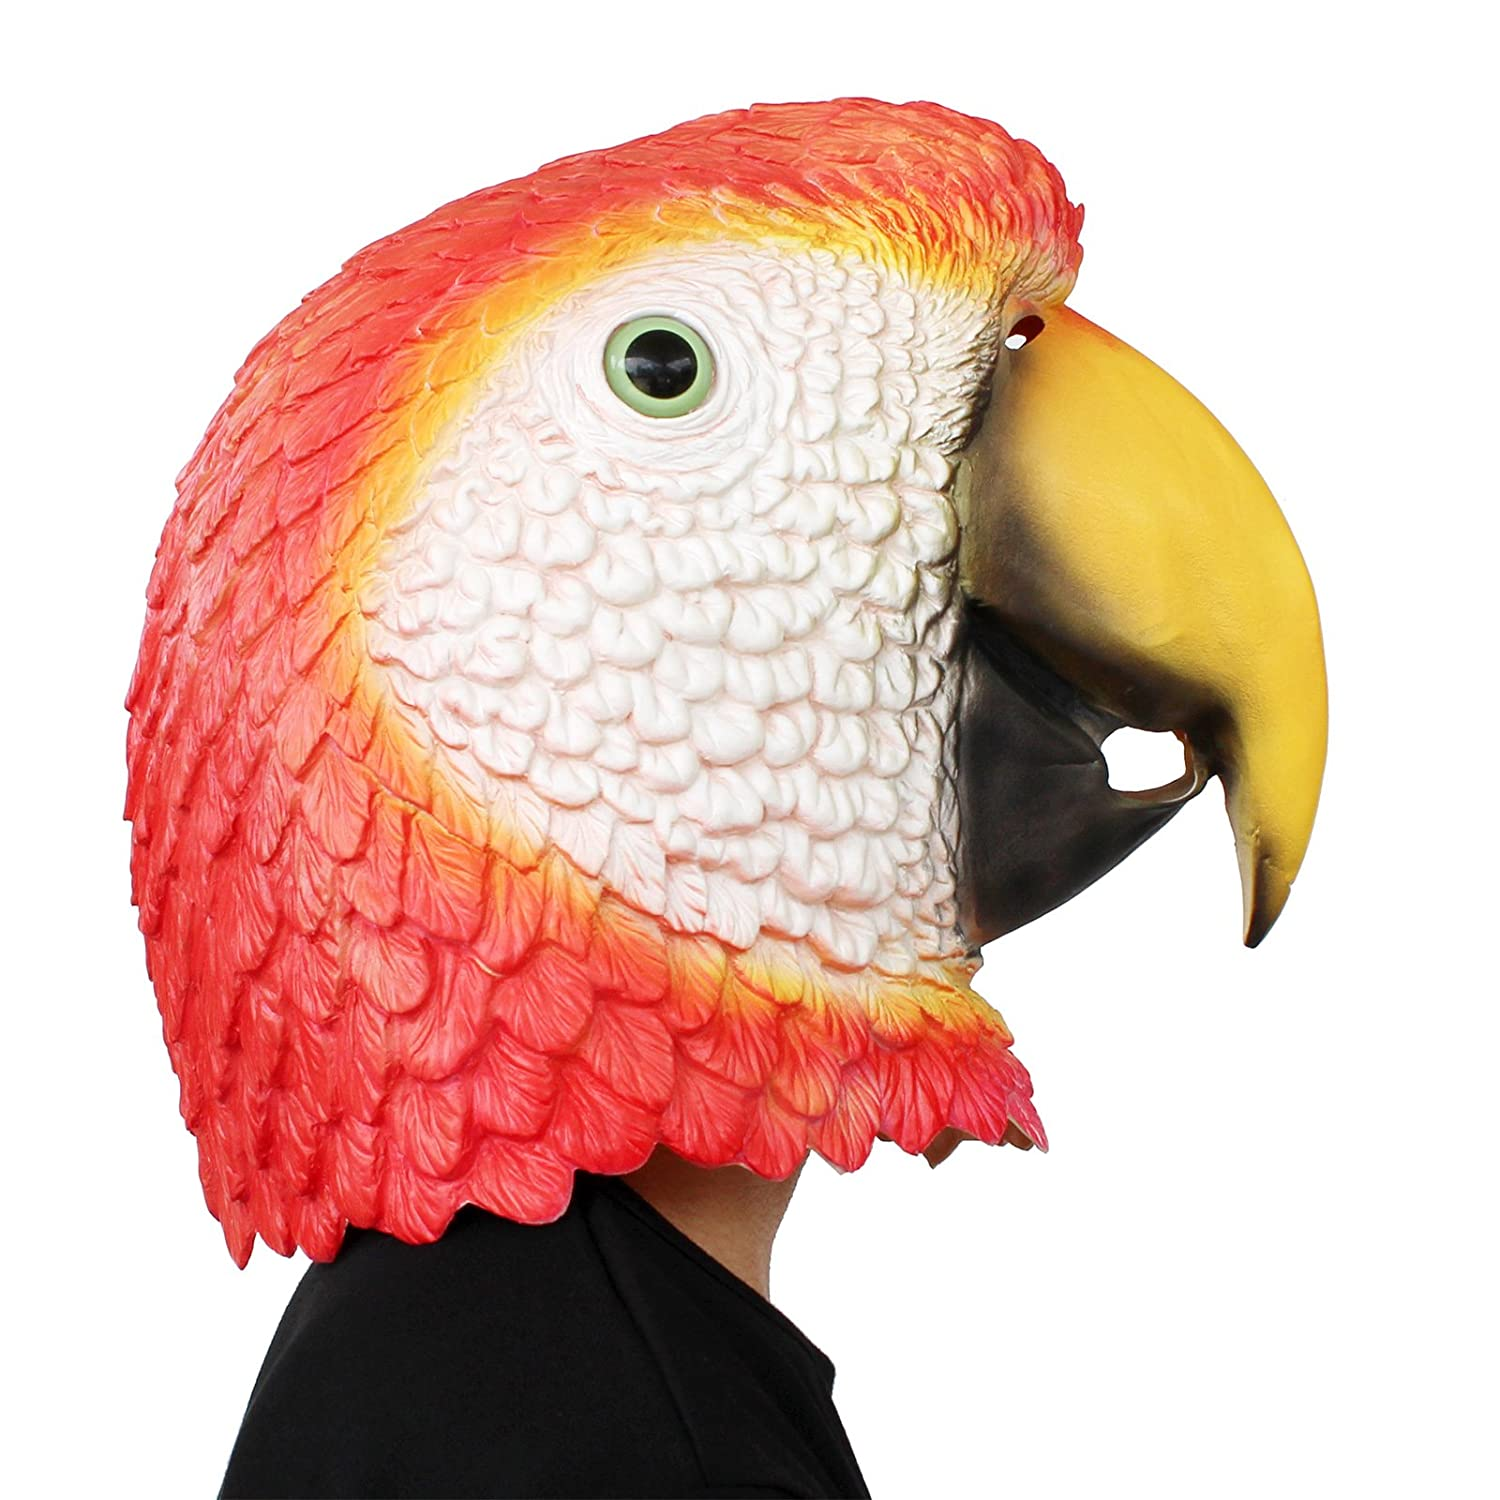 PartyCostume Red Parrot Mask Halloween Costume Party Latex Animal Bird Head Mask